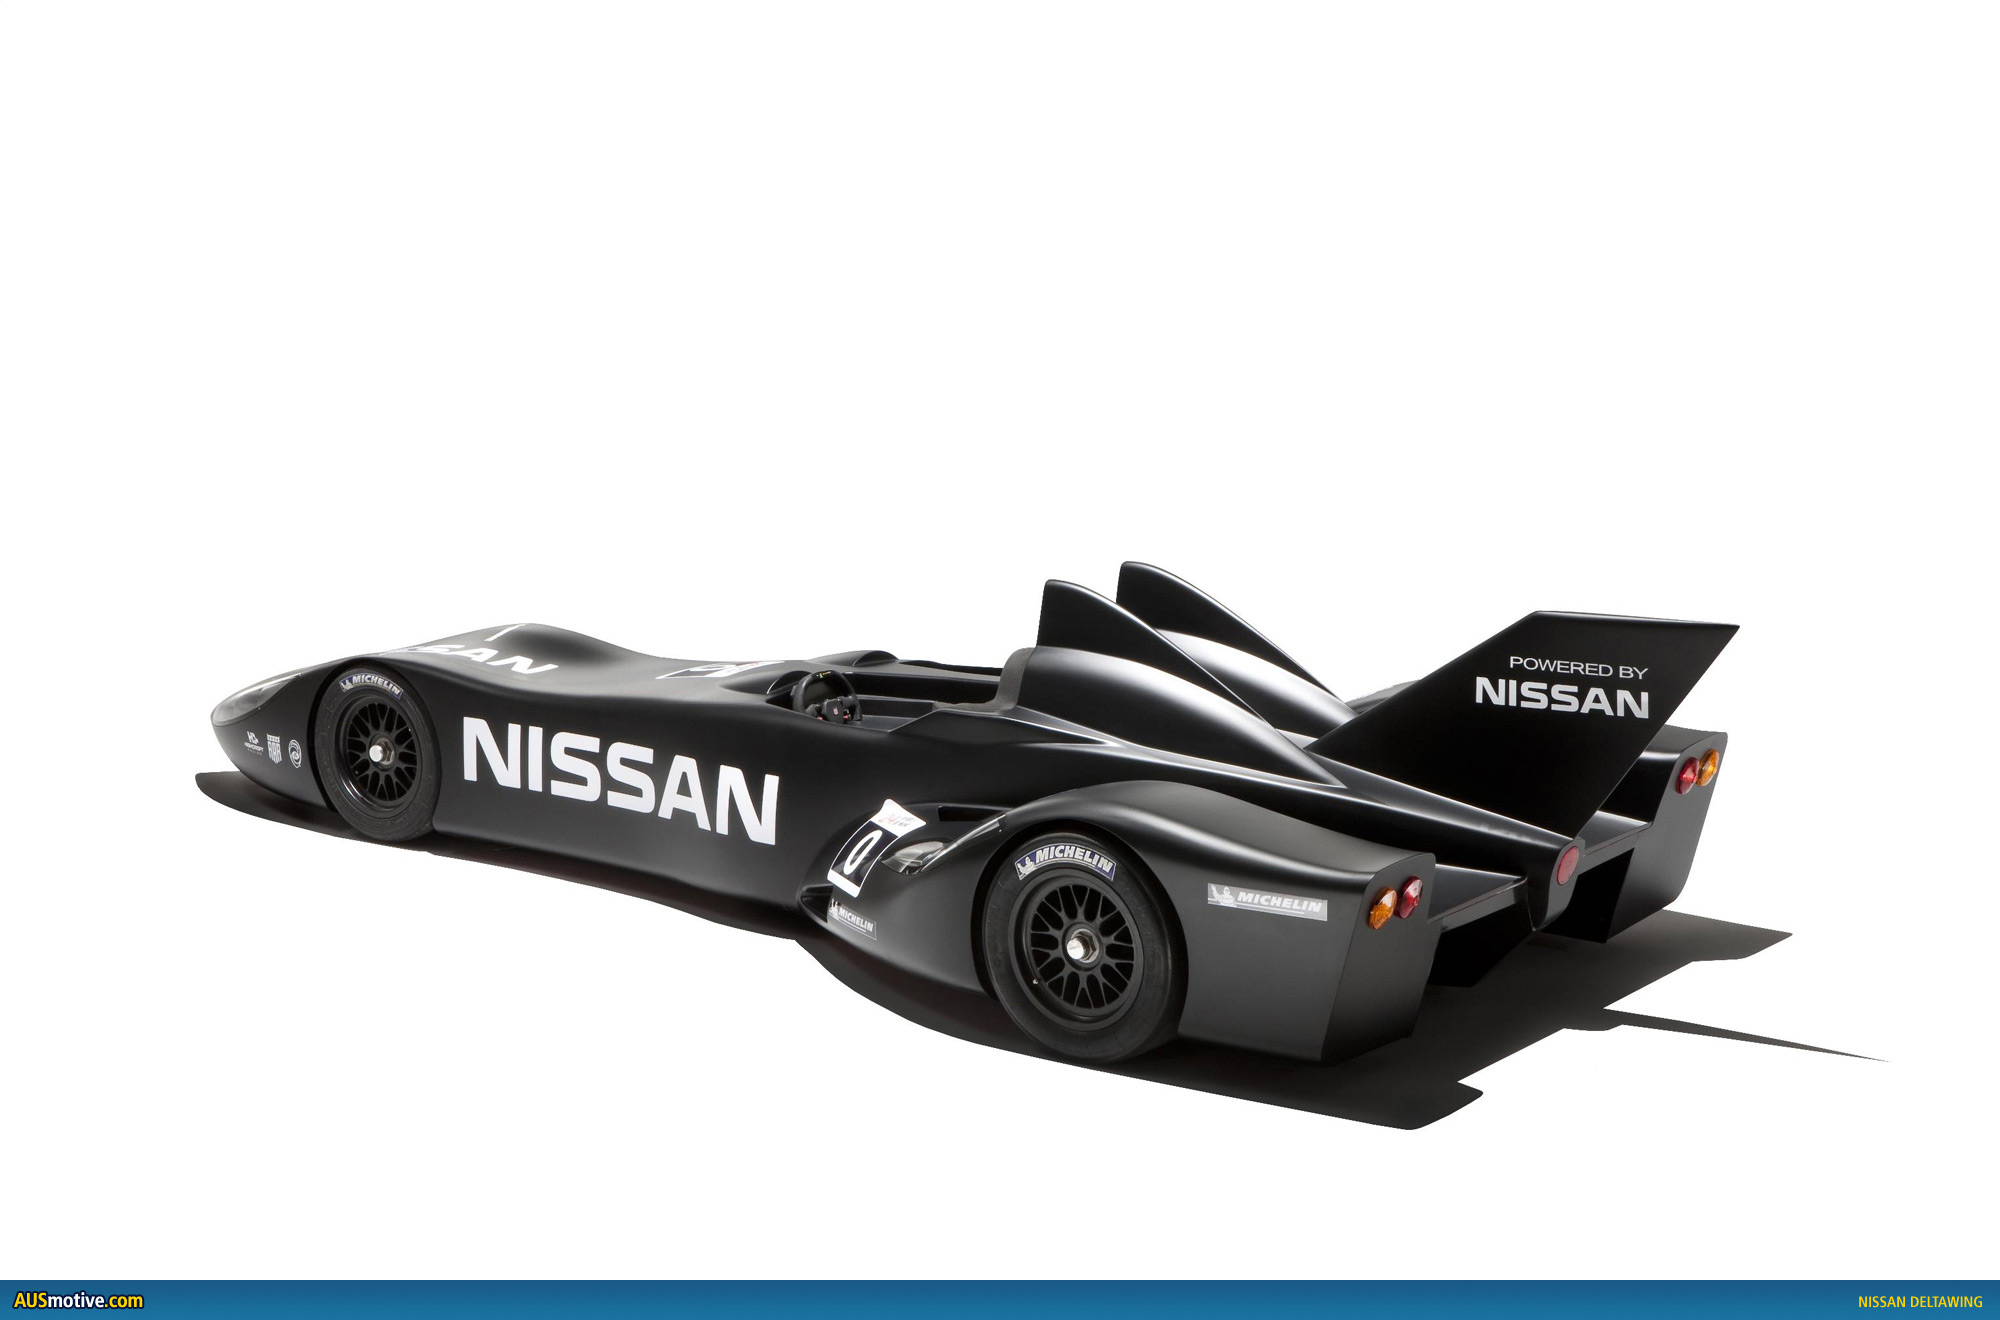 Ausmotive Com Nissan Deltawing Brings Batmobile To Life HD Wallpapers Download free images and photos [musssic.tk]